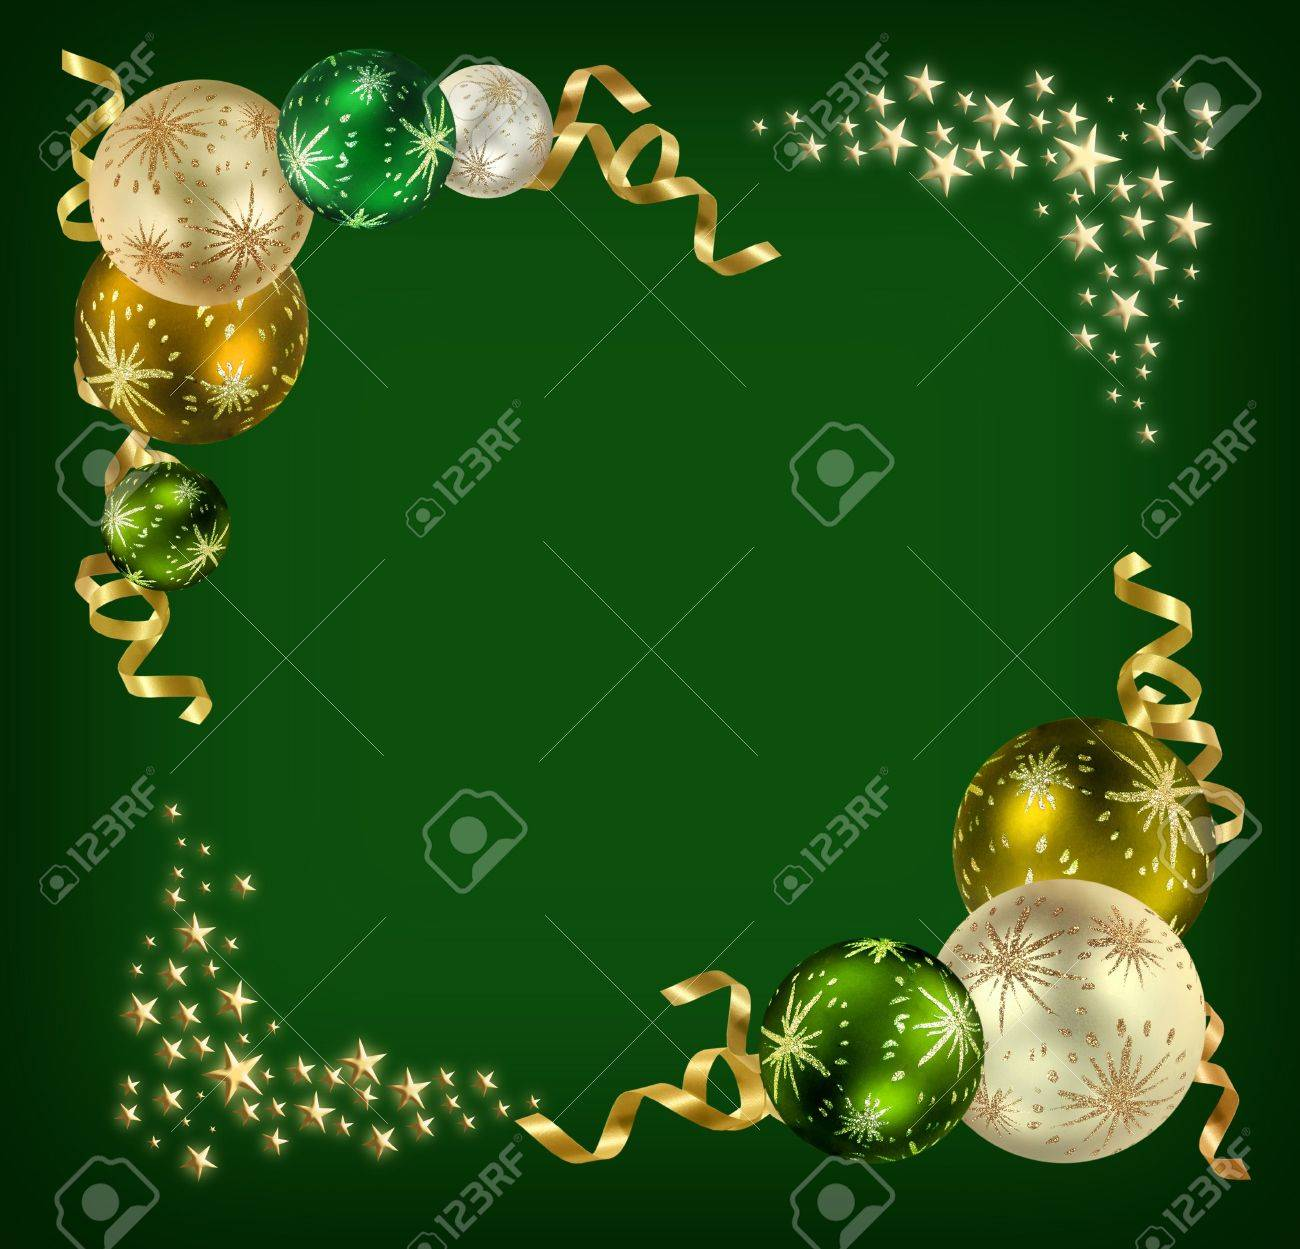 Christmas Feeling Background With Green Silver And Golden Balls Surrounded By Ribbons Stars